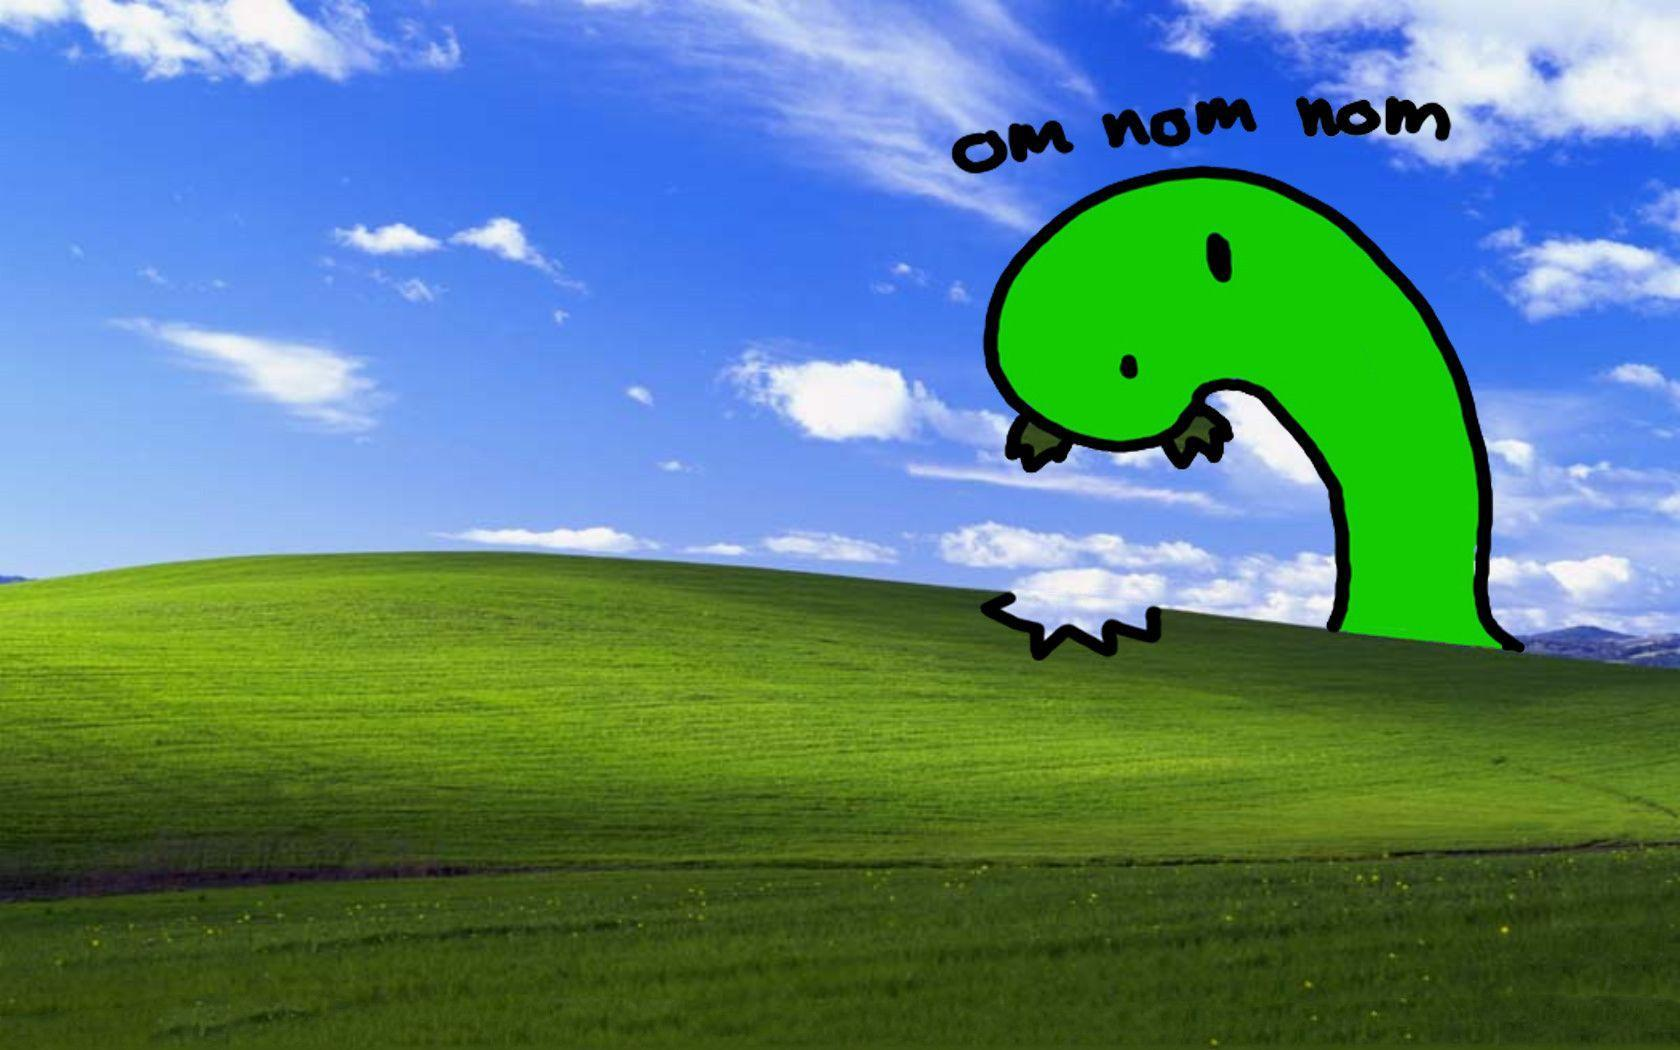 Funny Windows Desktop Backgrounds   Wallpaper Cave Download Funny Bliss Windows Wallpaper 1680x1050   HD Wallpapers